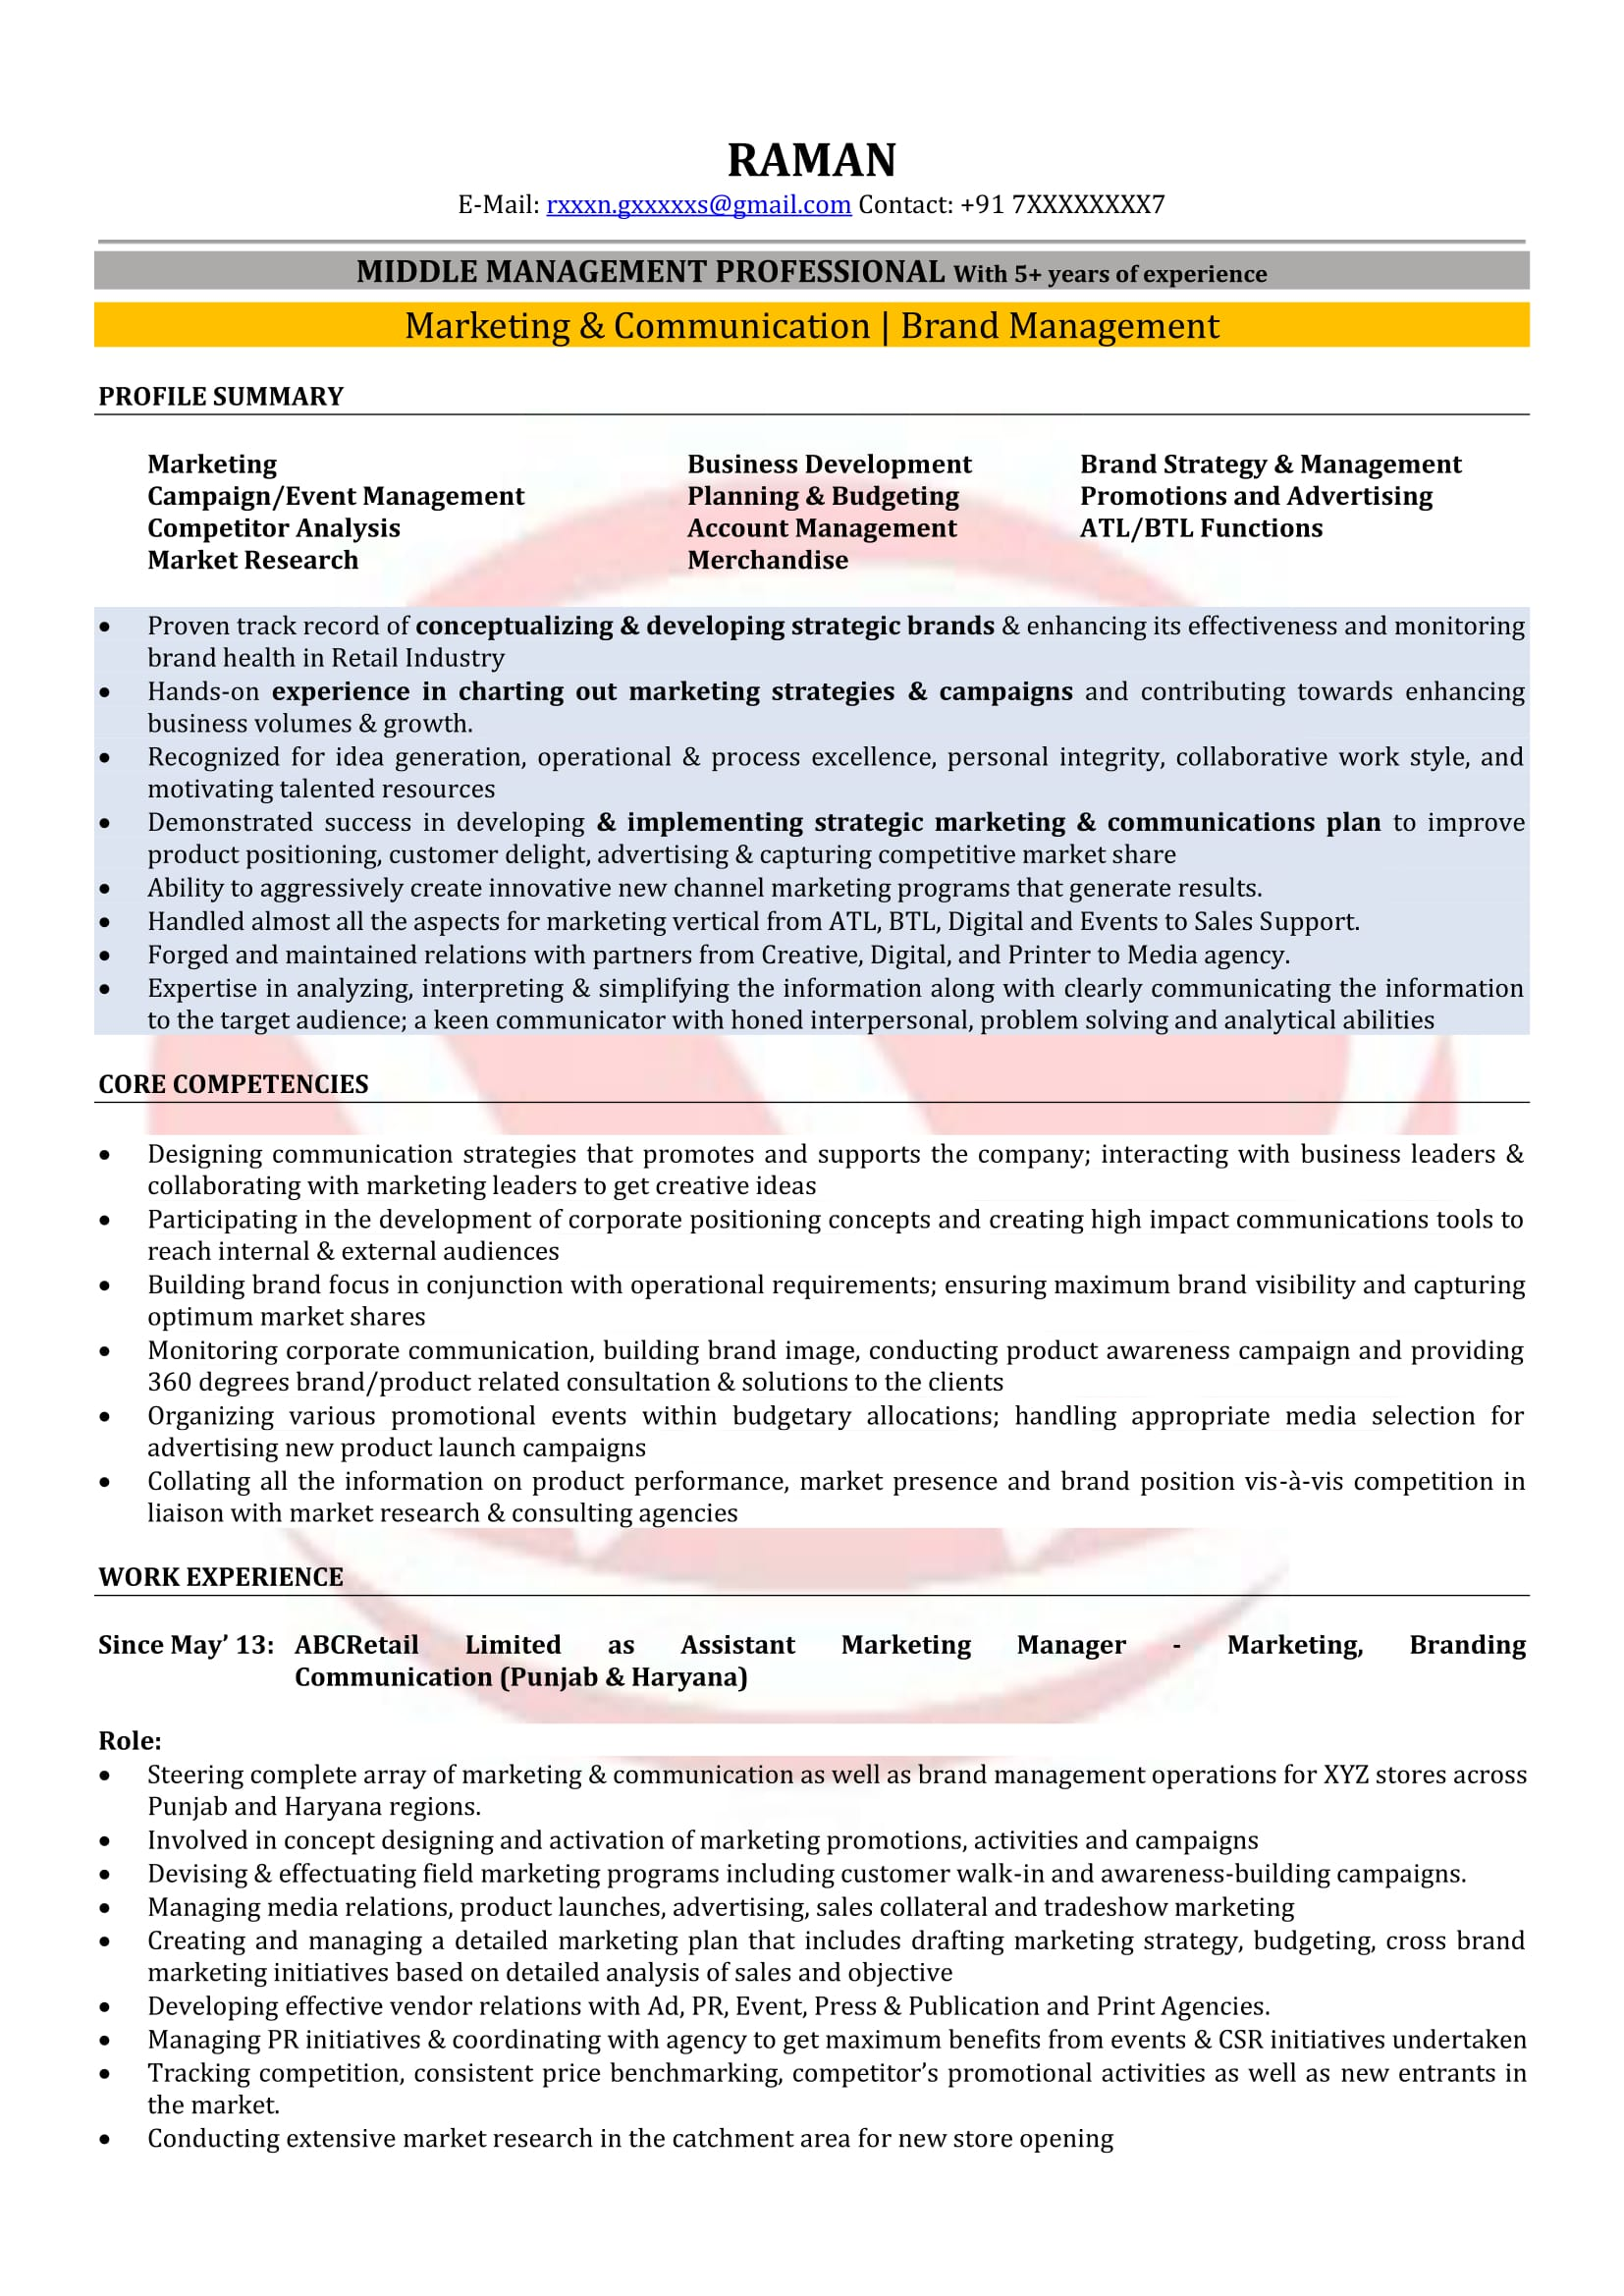 marketing manager sample resumes  download resume format templates